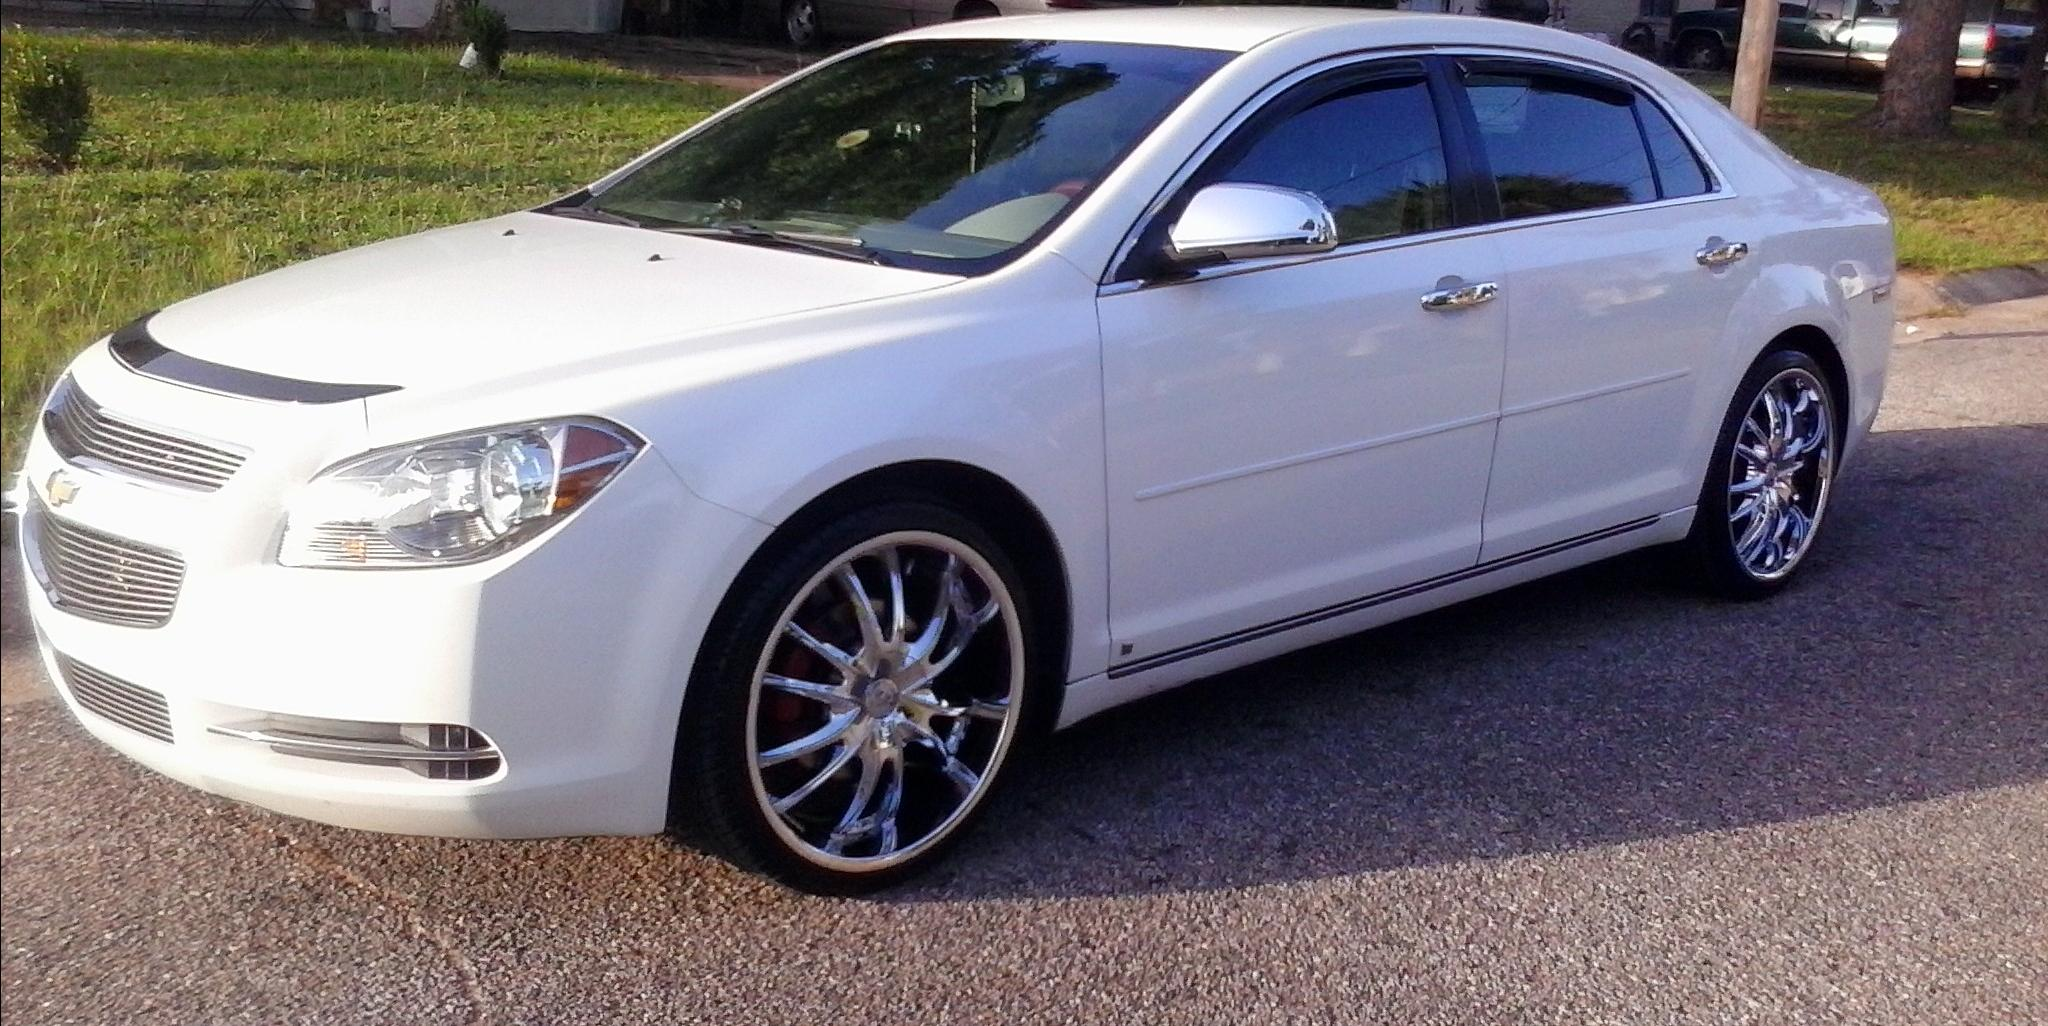 2012 Chevy Malibu Ltz Specs >> TrillAssAarron 2006 Chevrolet MalibuSS Sedan 4D Specs, Photos, Modification Info at CarDomain